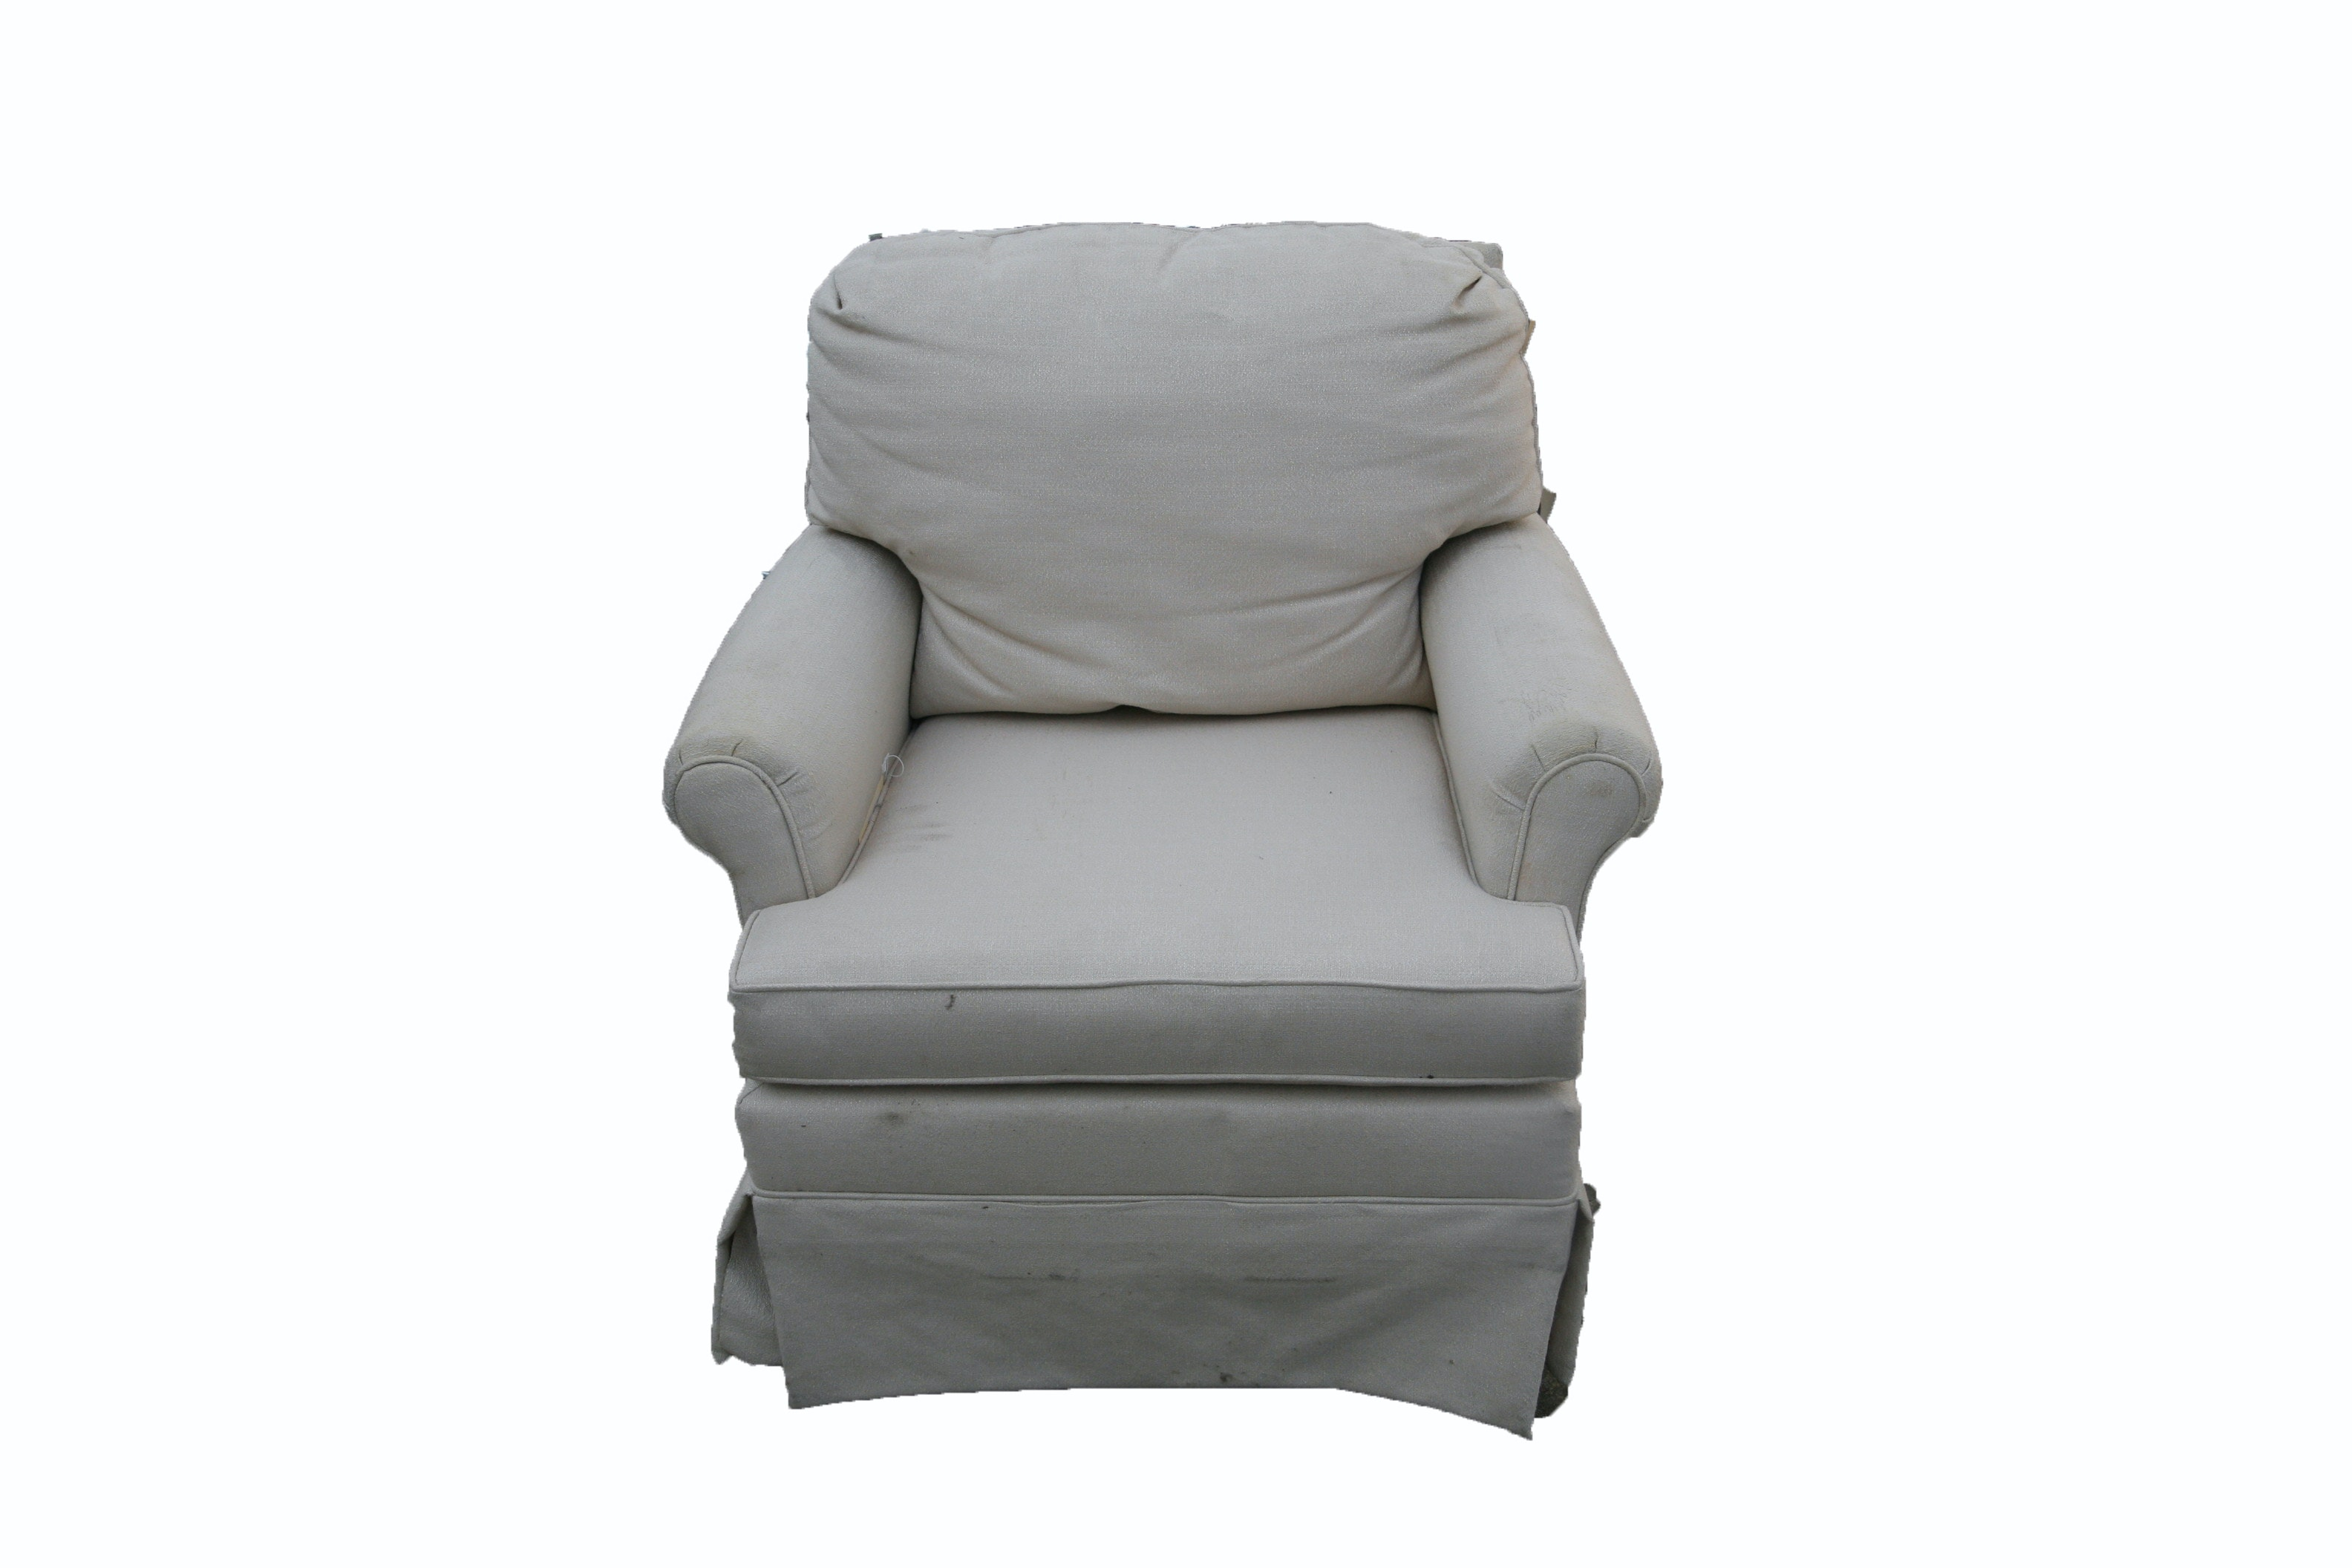 Upholstered Club Chair by Best Chairs, Inc.